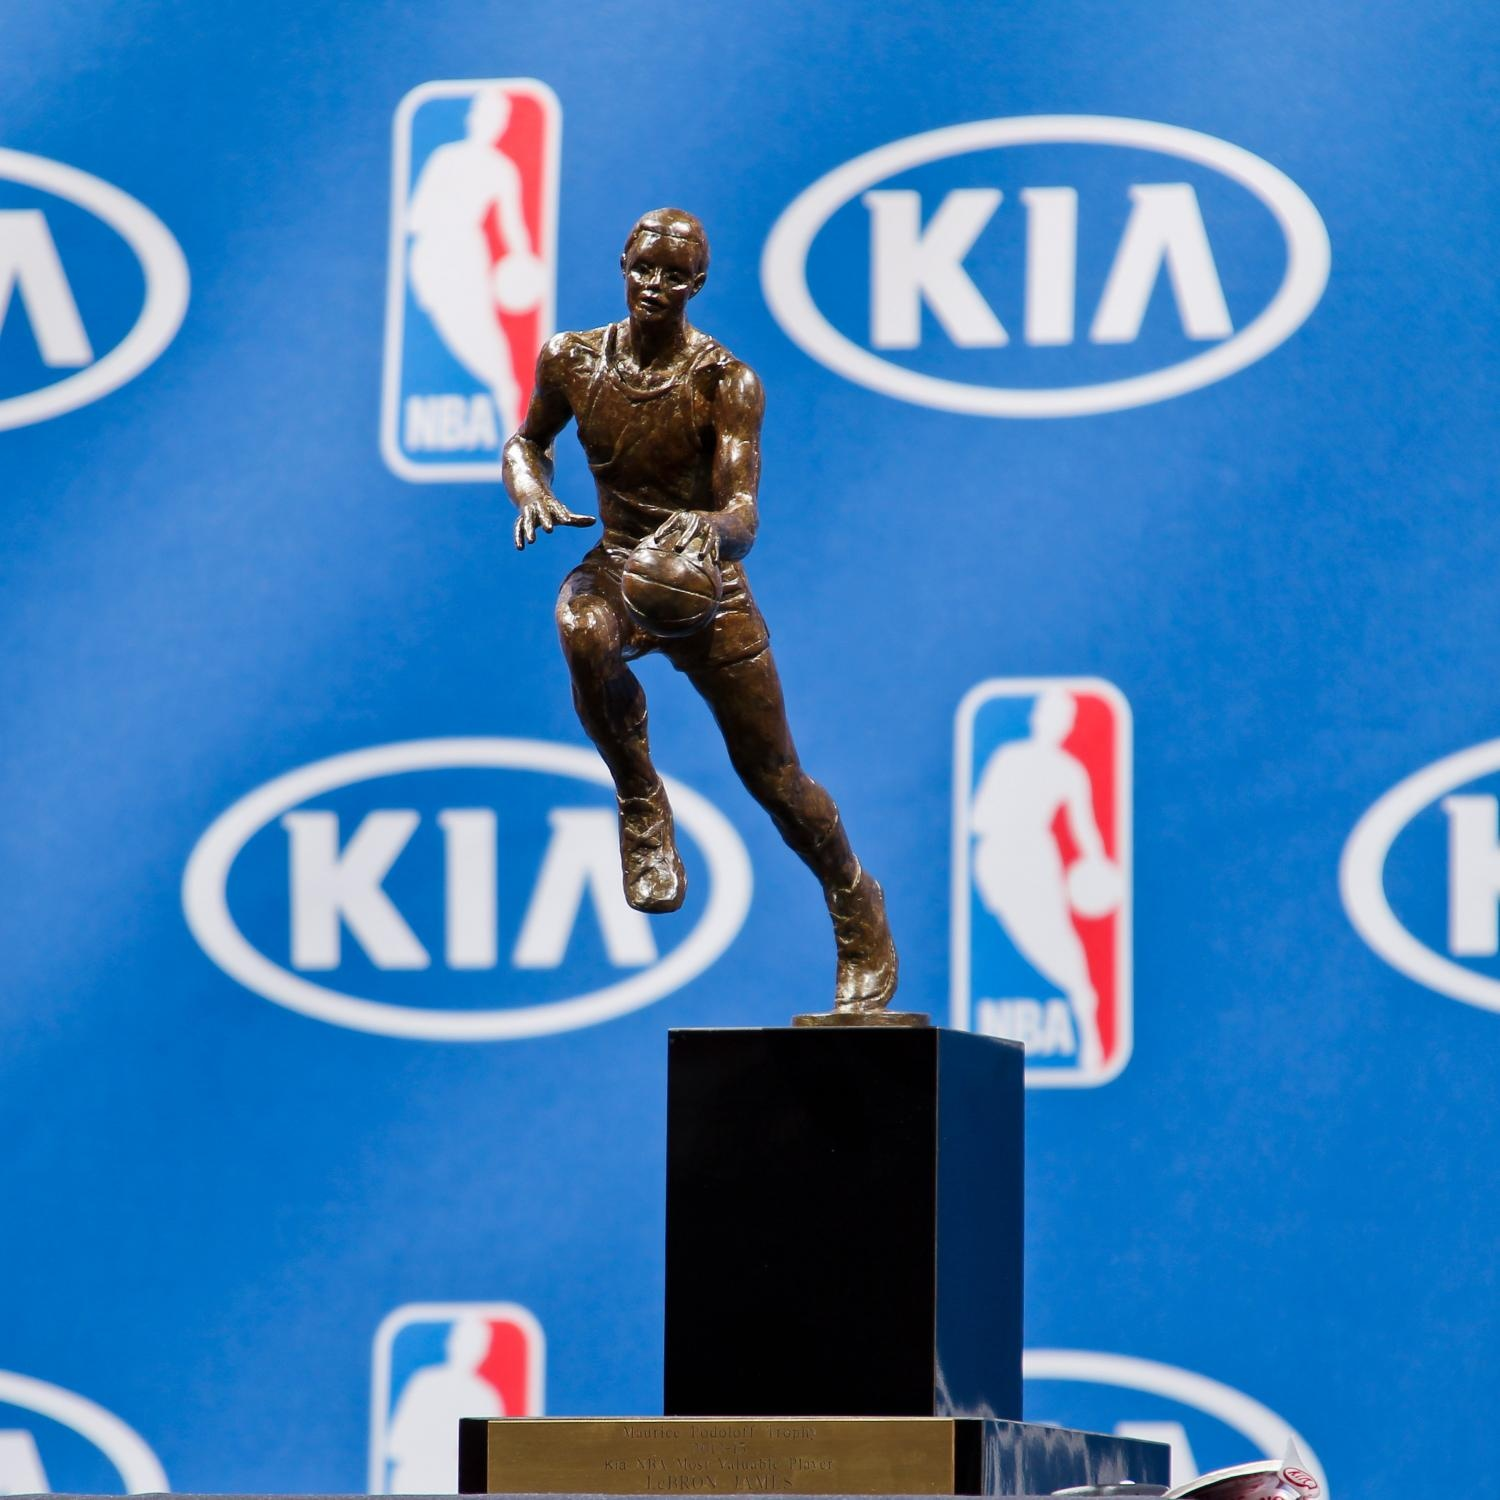 round table: who should win the 2017 nba mvp award? — herban indigo